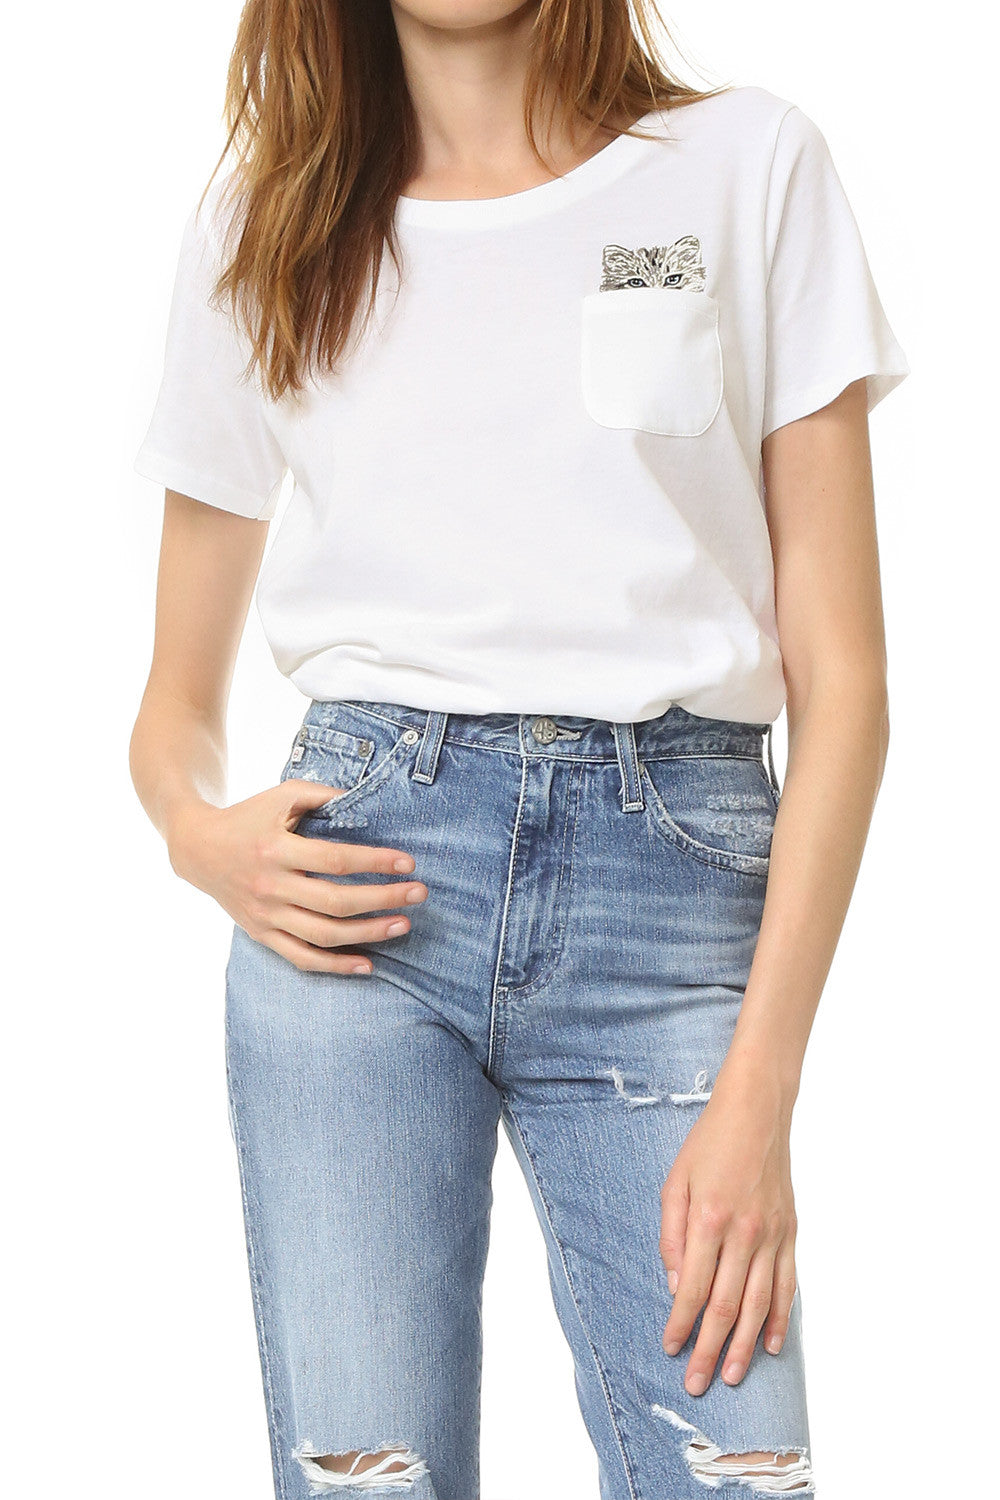 Glendale Cat Pocket Tee - White-1